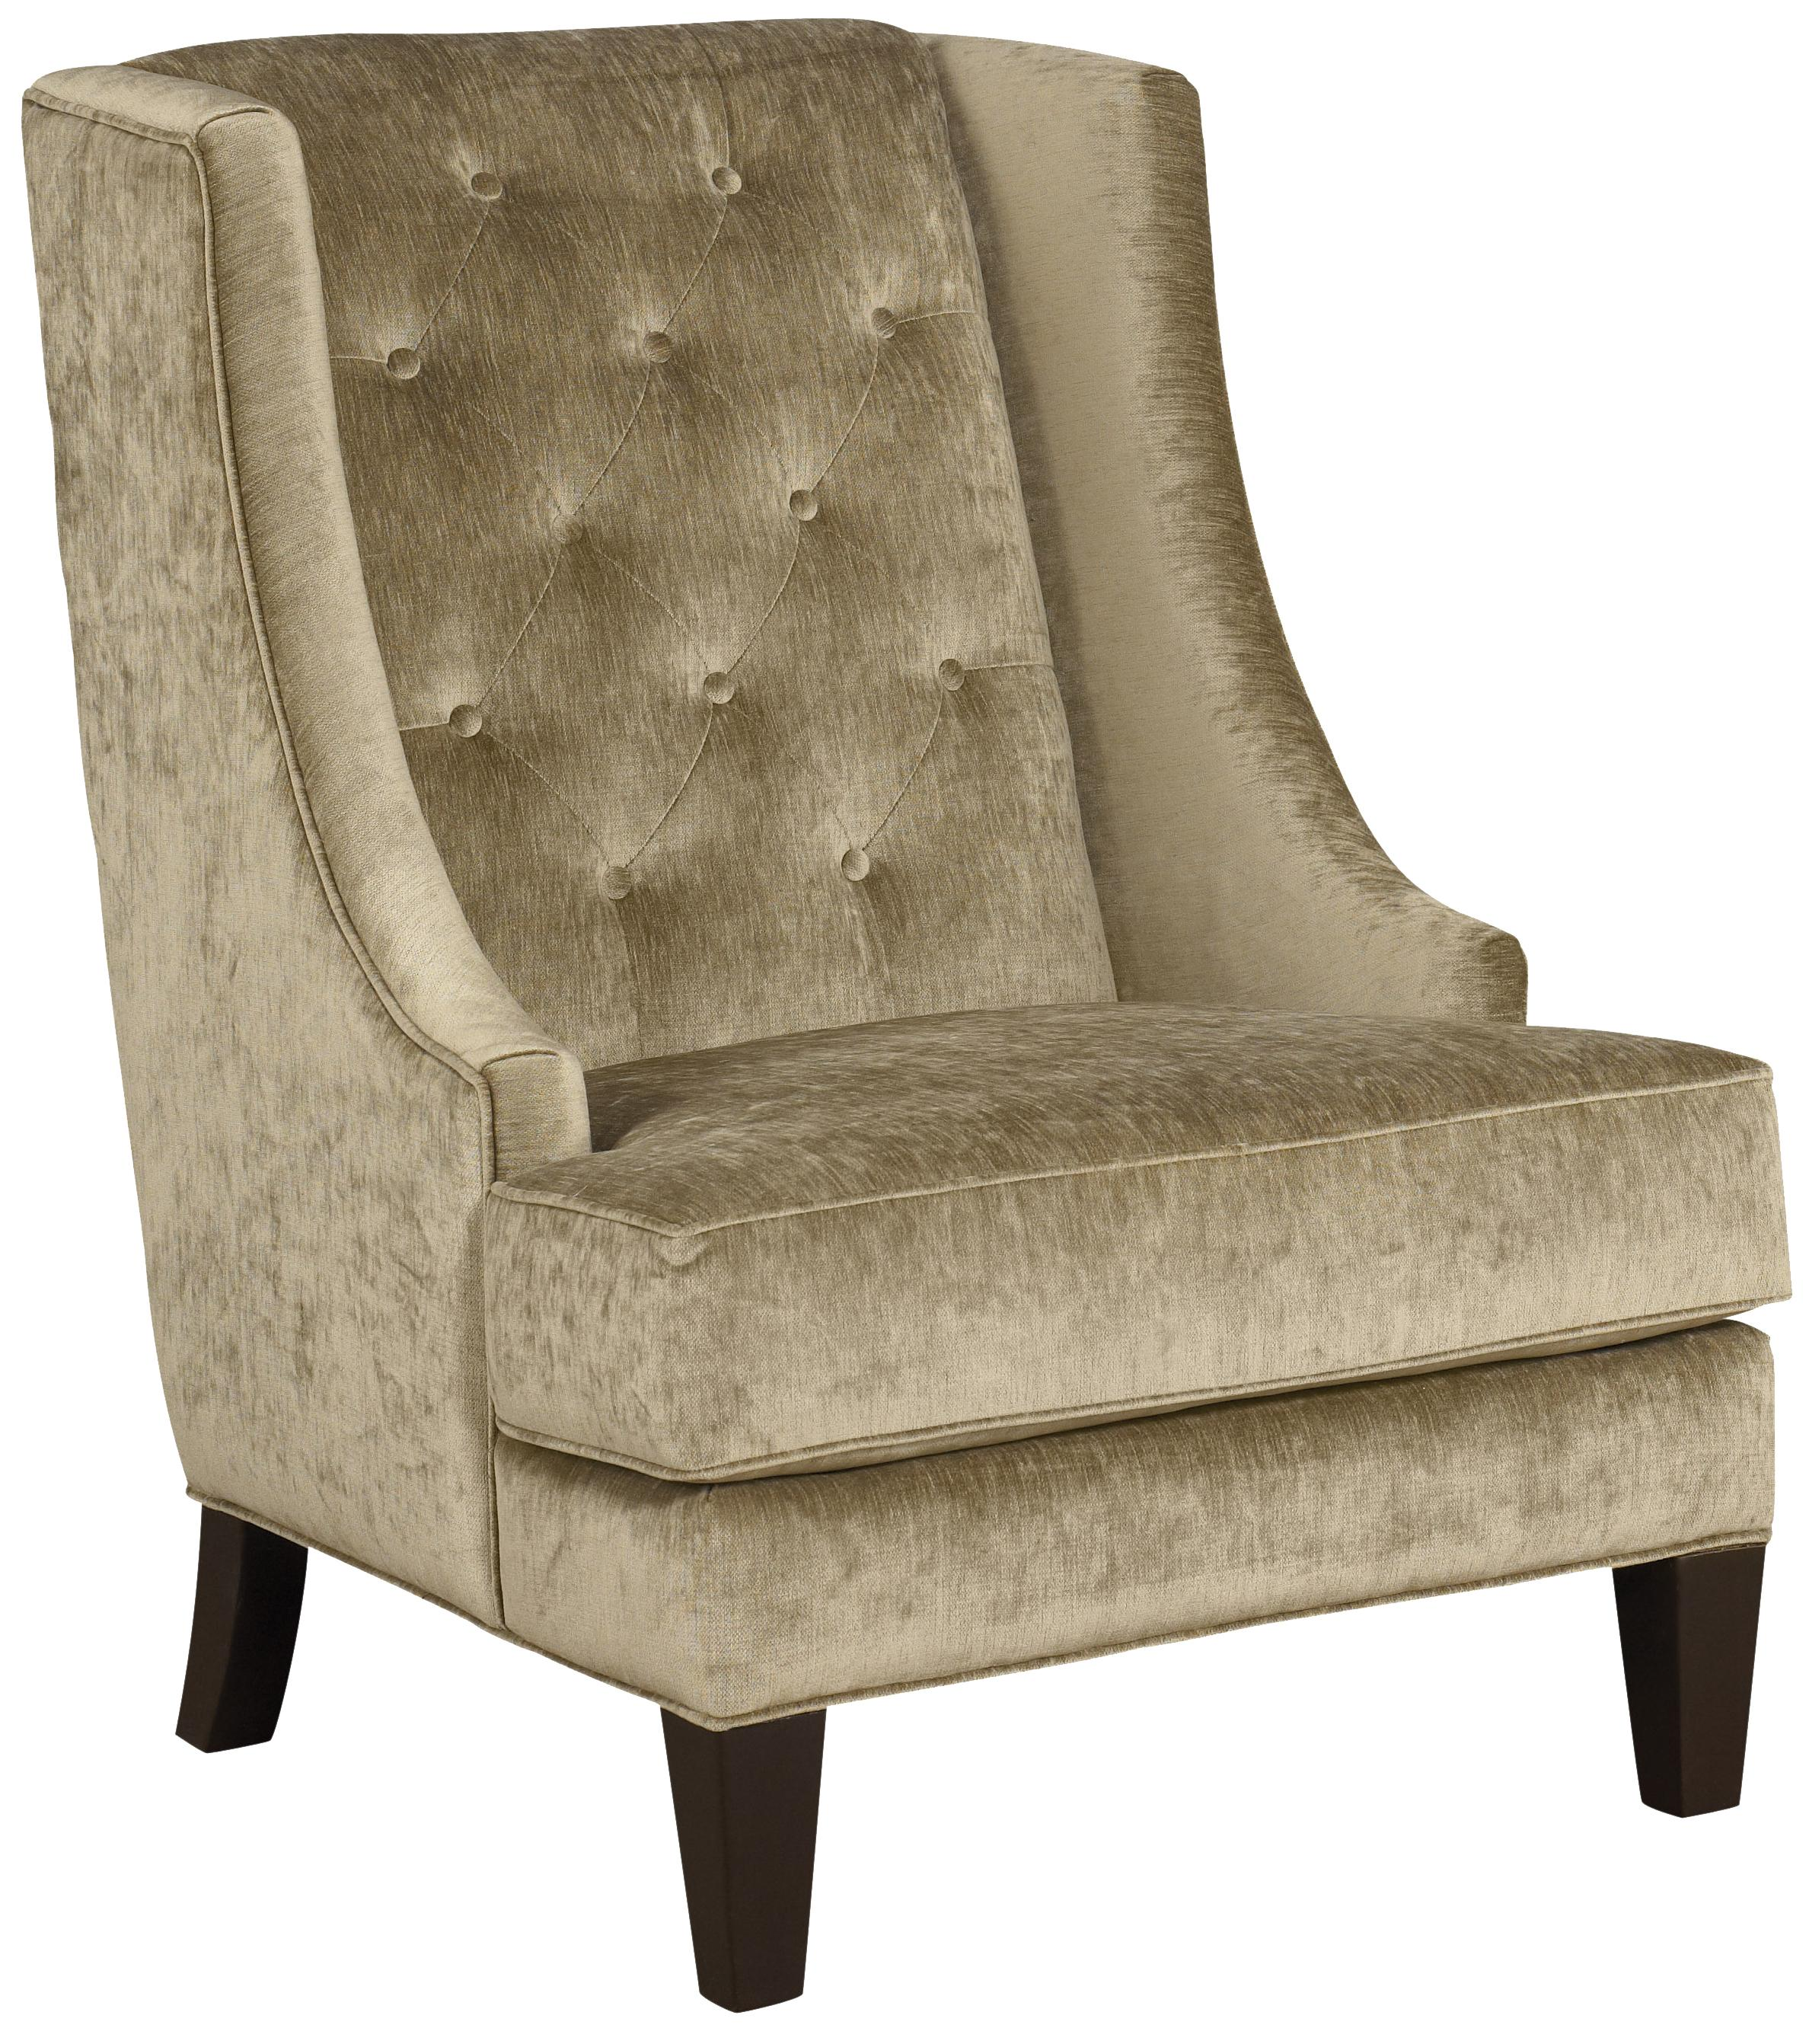 Accentuates Accent Chair by Jonathan Louis at Michael Alan Furniture & Design